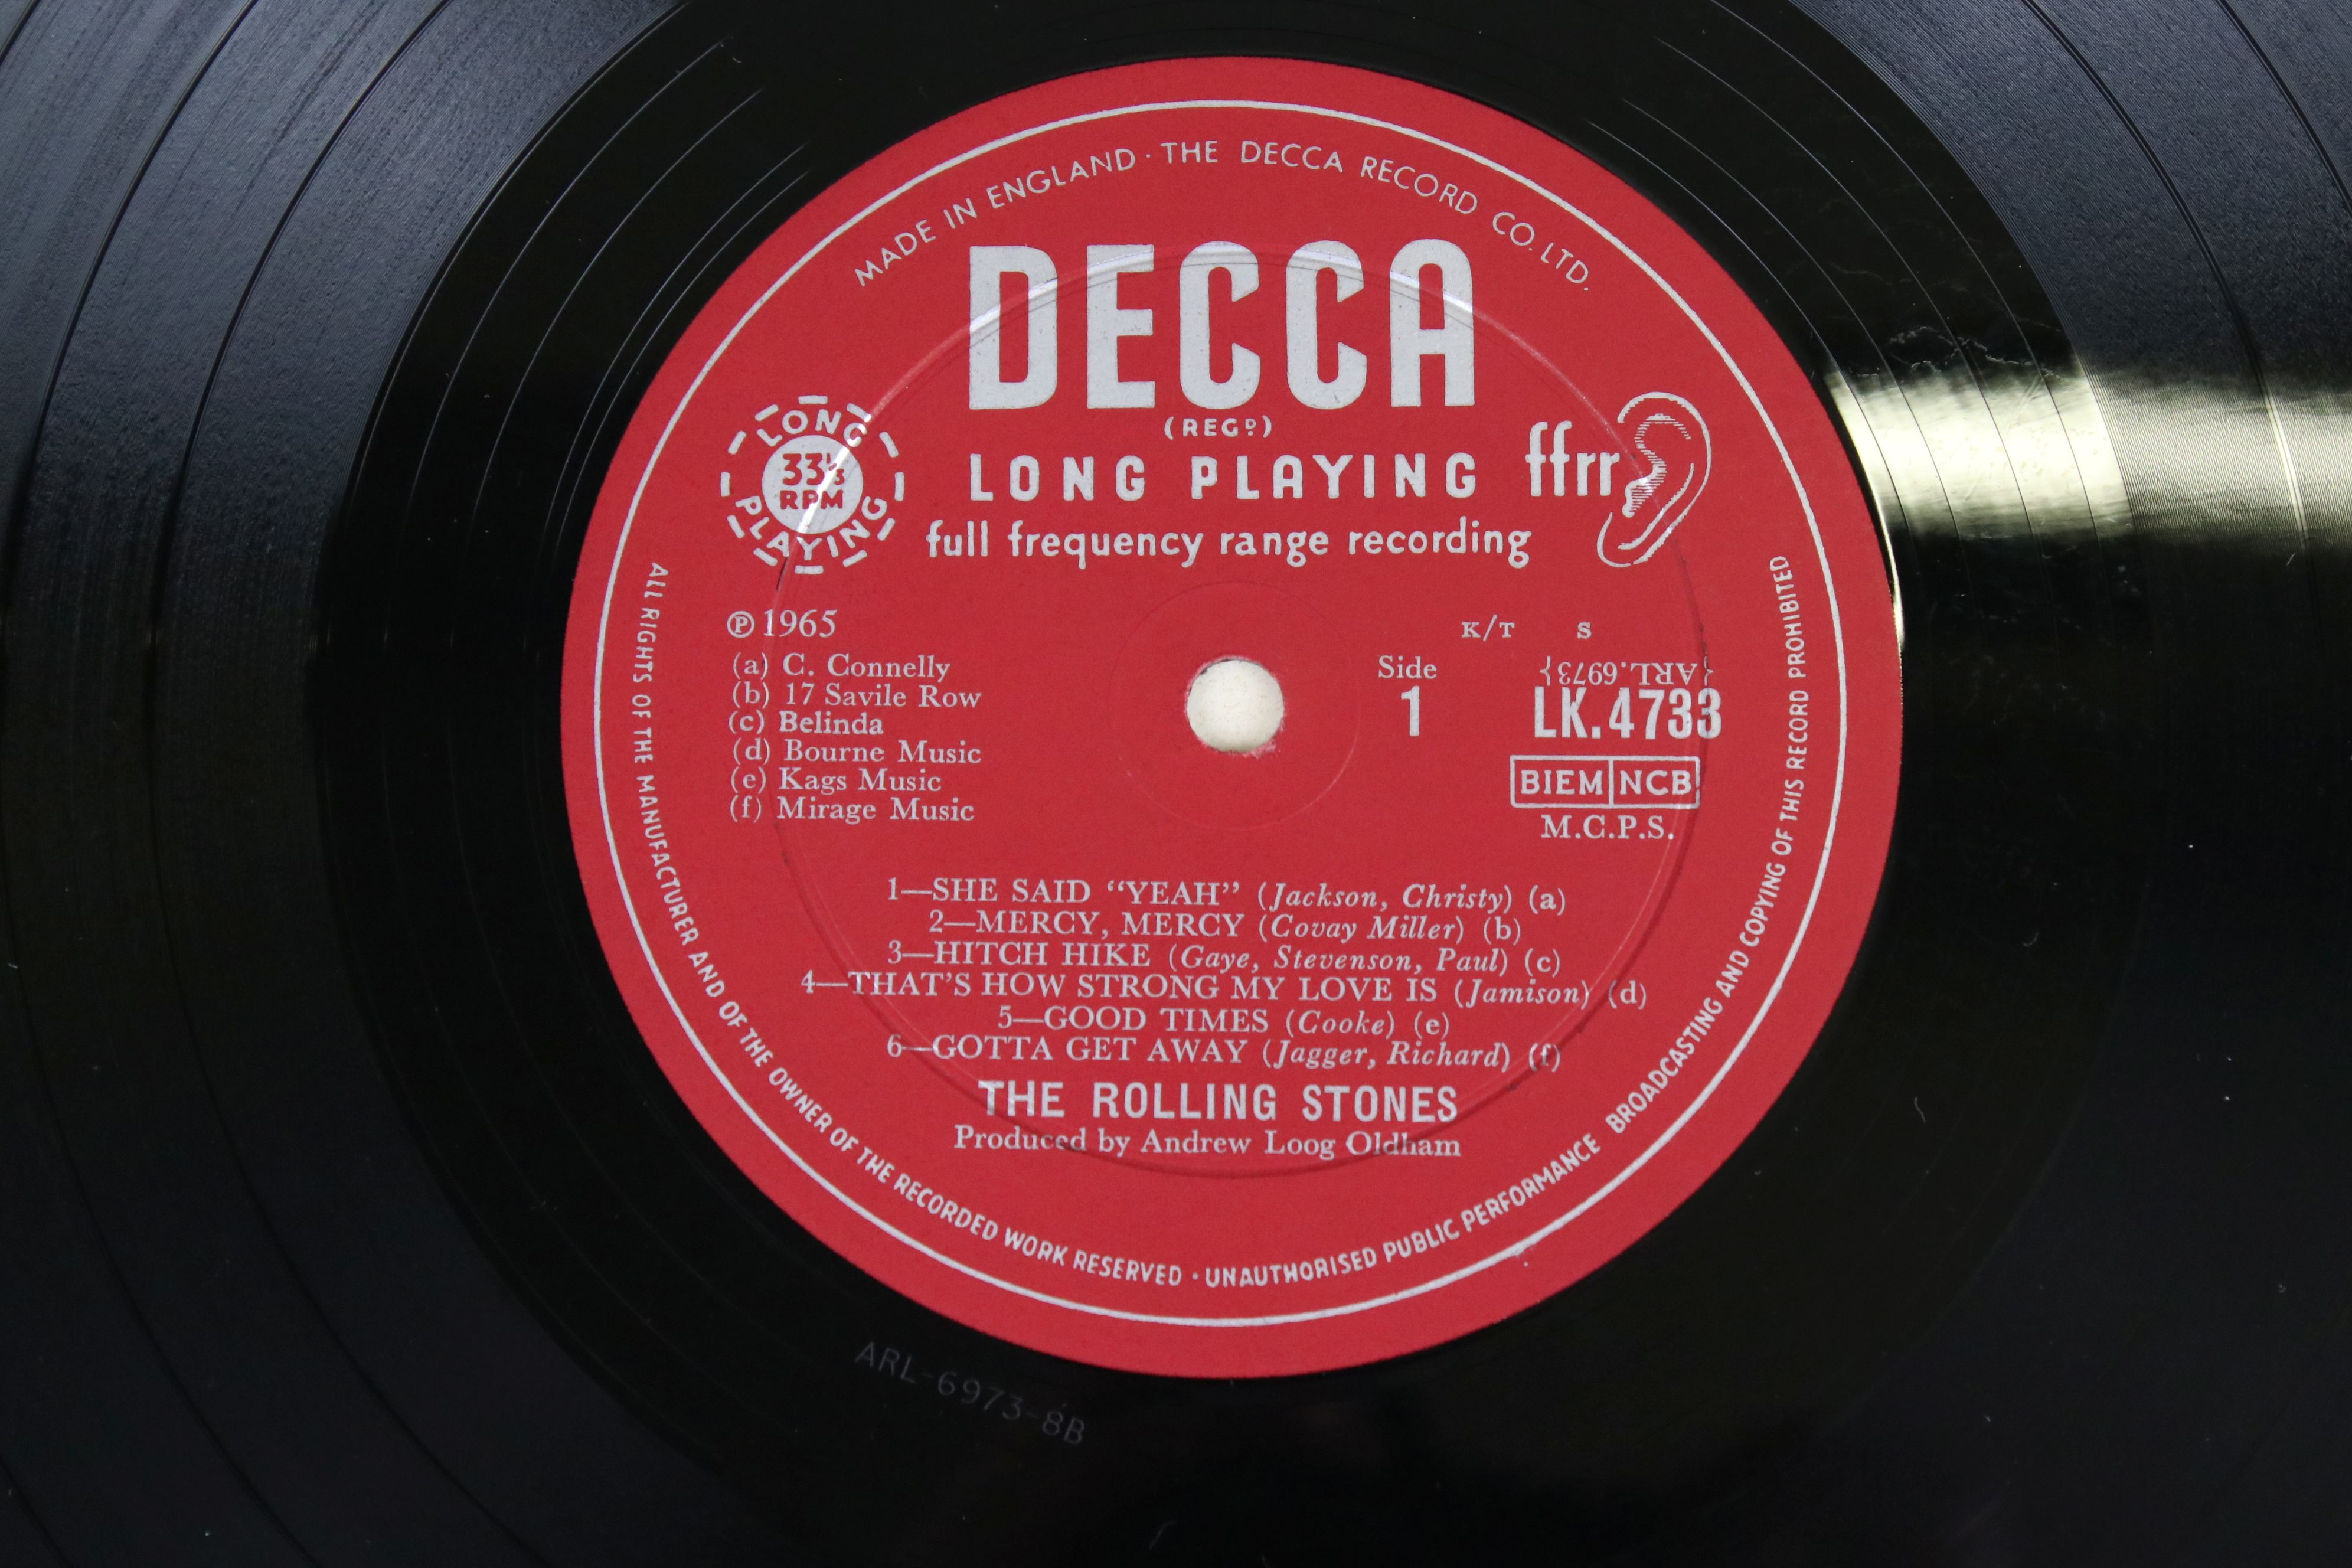 Vinyl - The Rolling Stones Out Of Our Heads (Decca LK 4733) mono, non flipback sleeve by Robert - Image 3 of 4